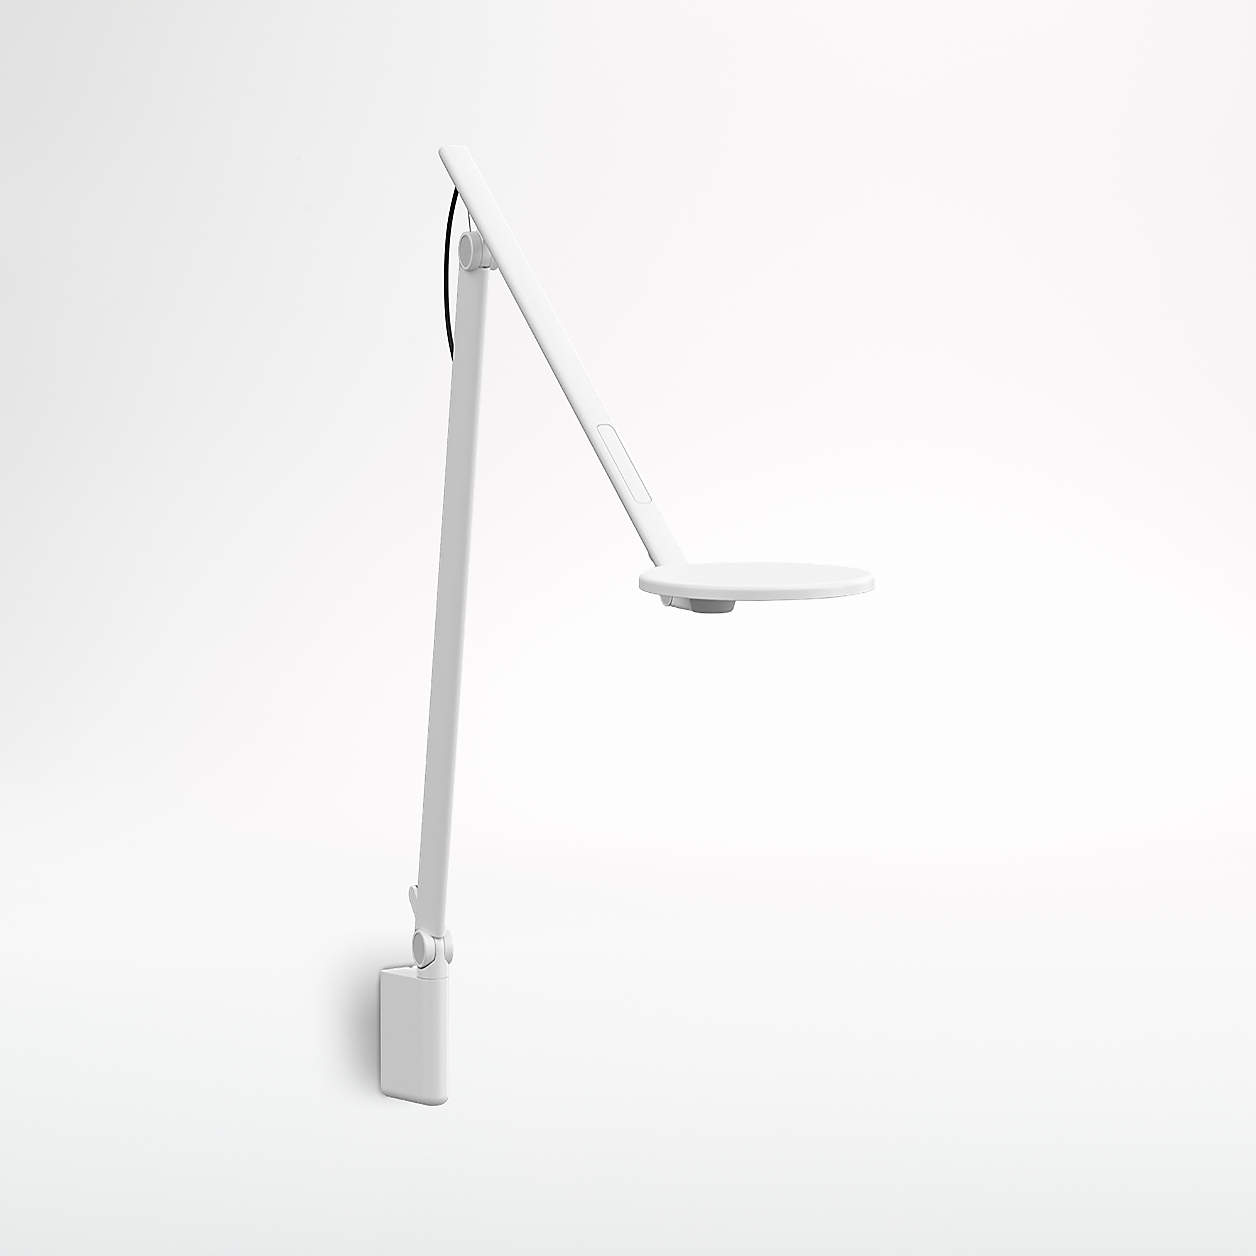 Humanscale sconce